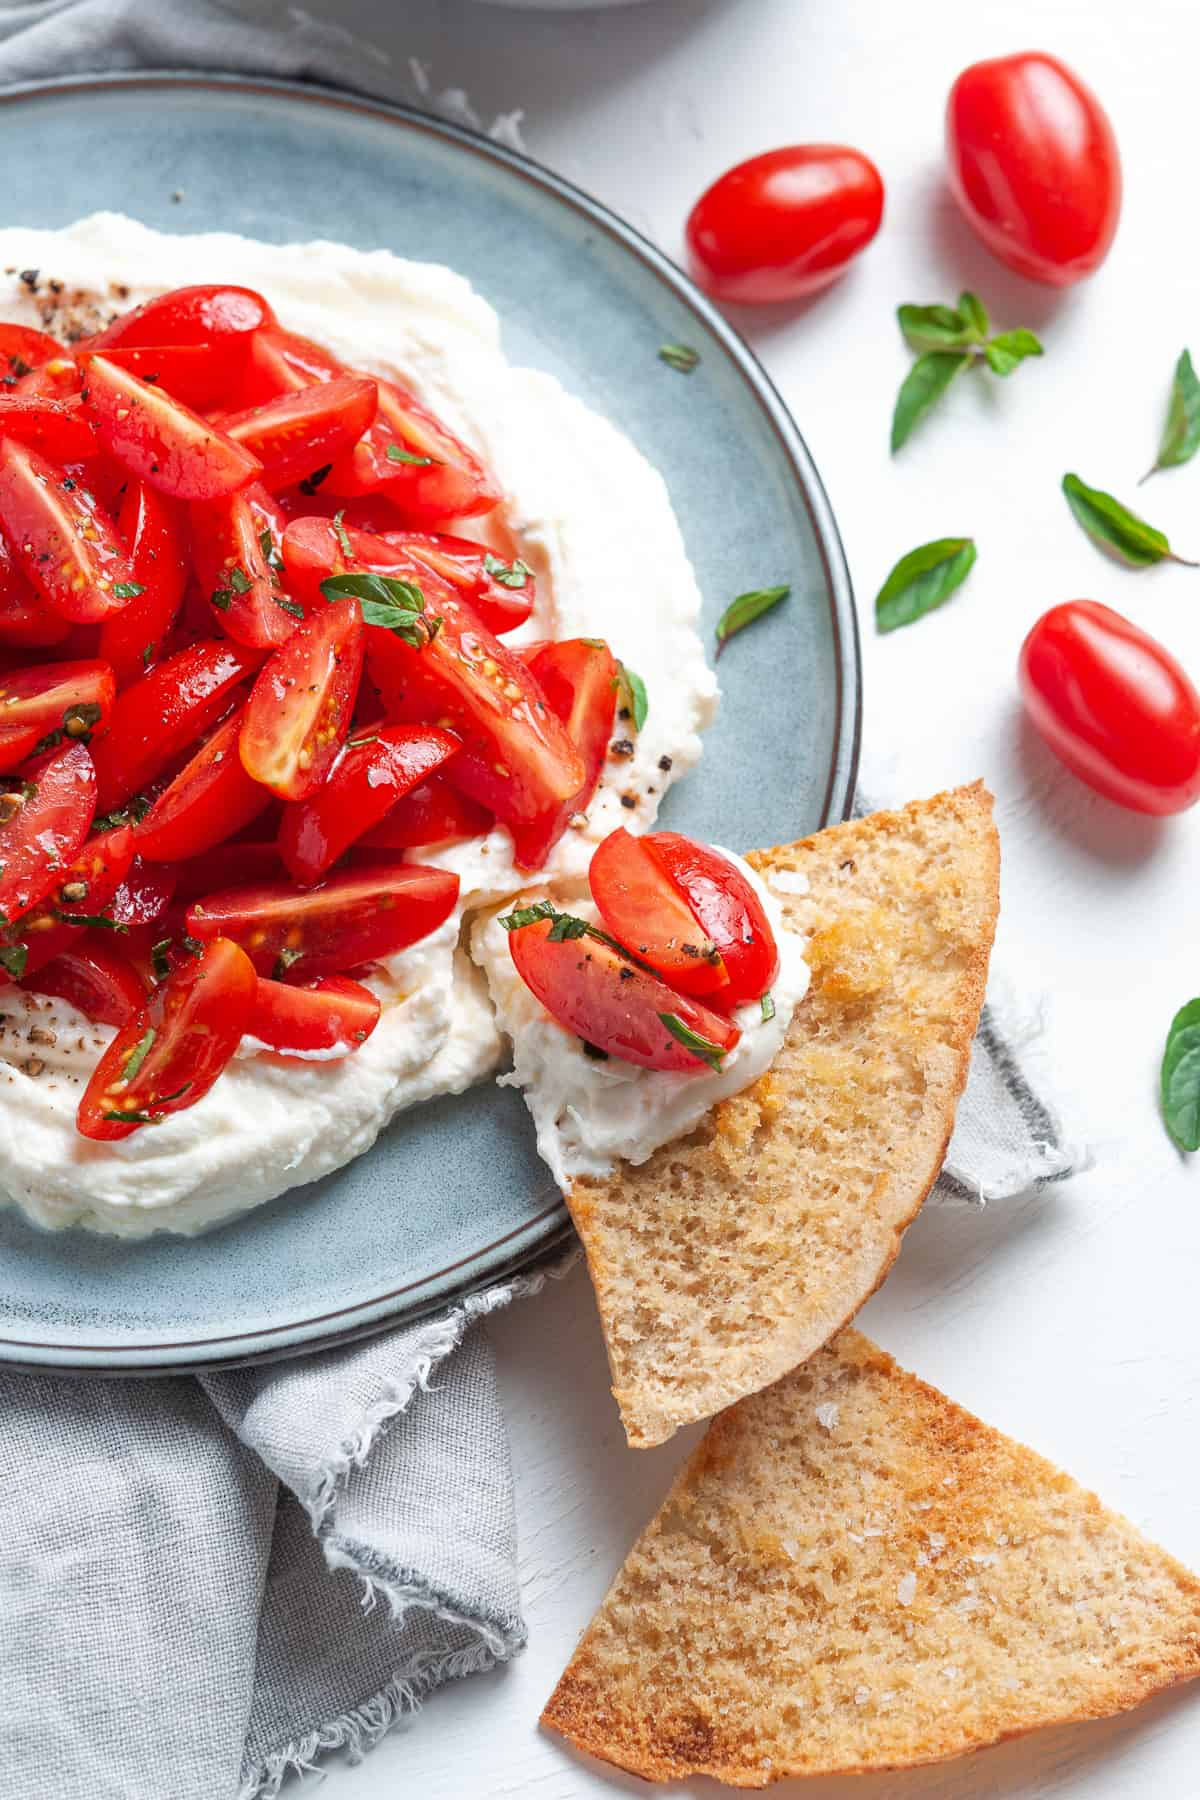 Up close shot of dish of ricotta and tomatoes, with a pita chip dipped into dish.